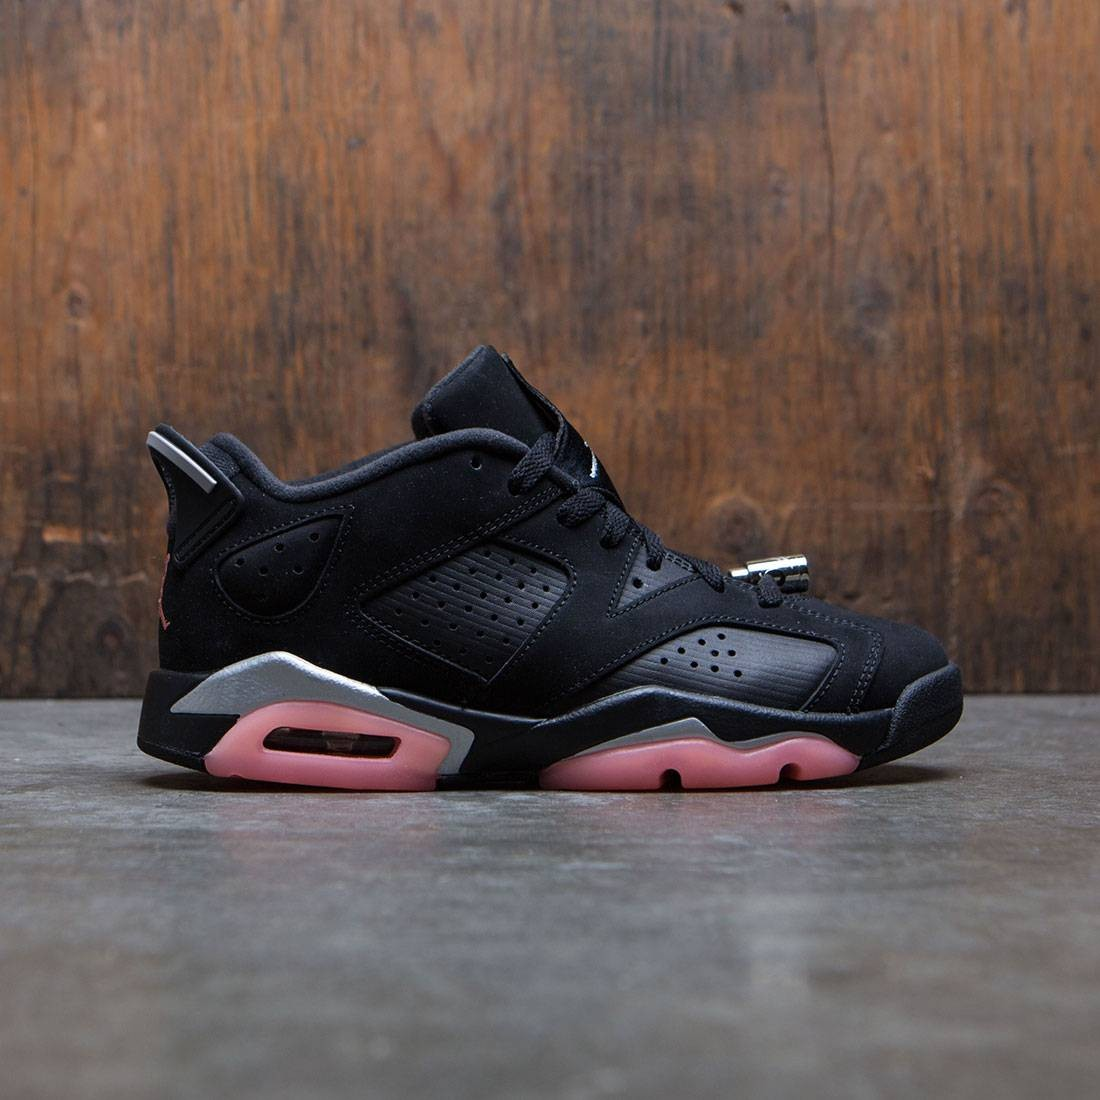 543d6bdad40 jordan big kids girls  air jordan vi retro low gs black sunblush metallic  silver